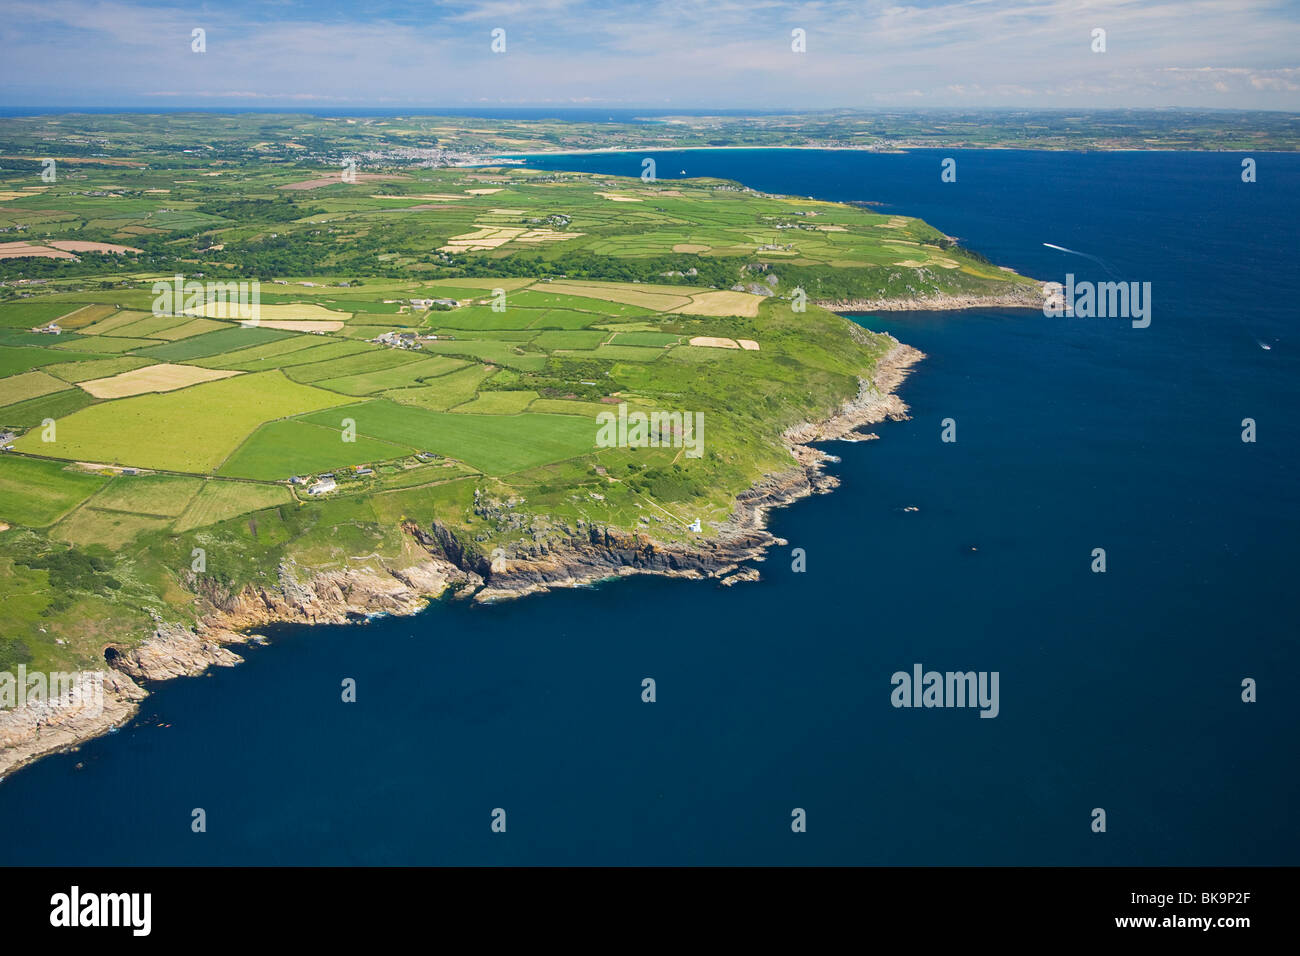 Lands End Peninsula looking to Penzance in summer, Cornwall, United Kingdom - Stock Image